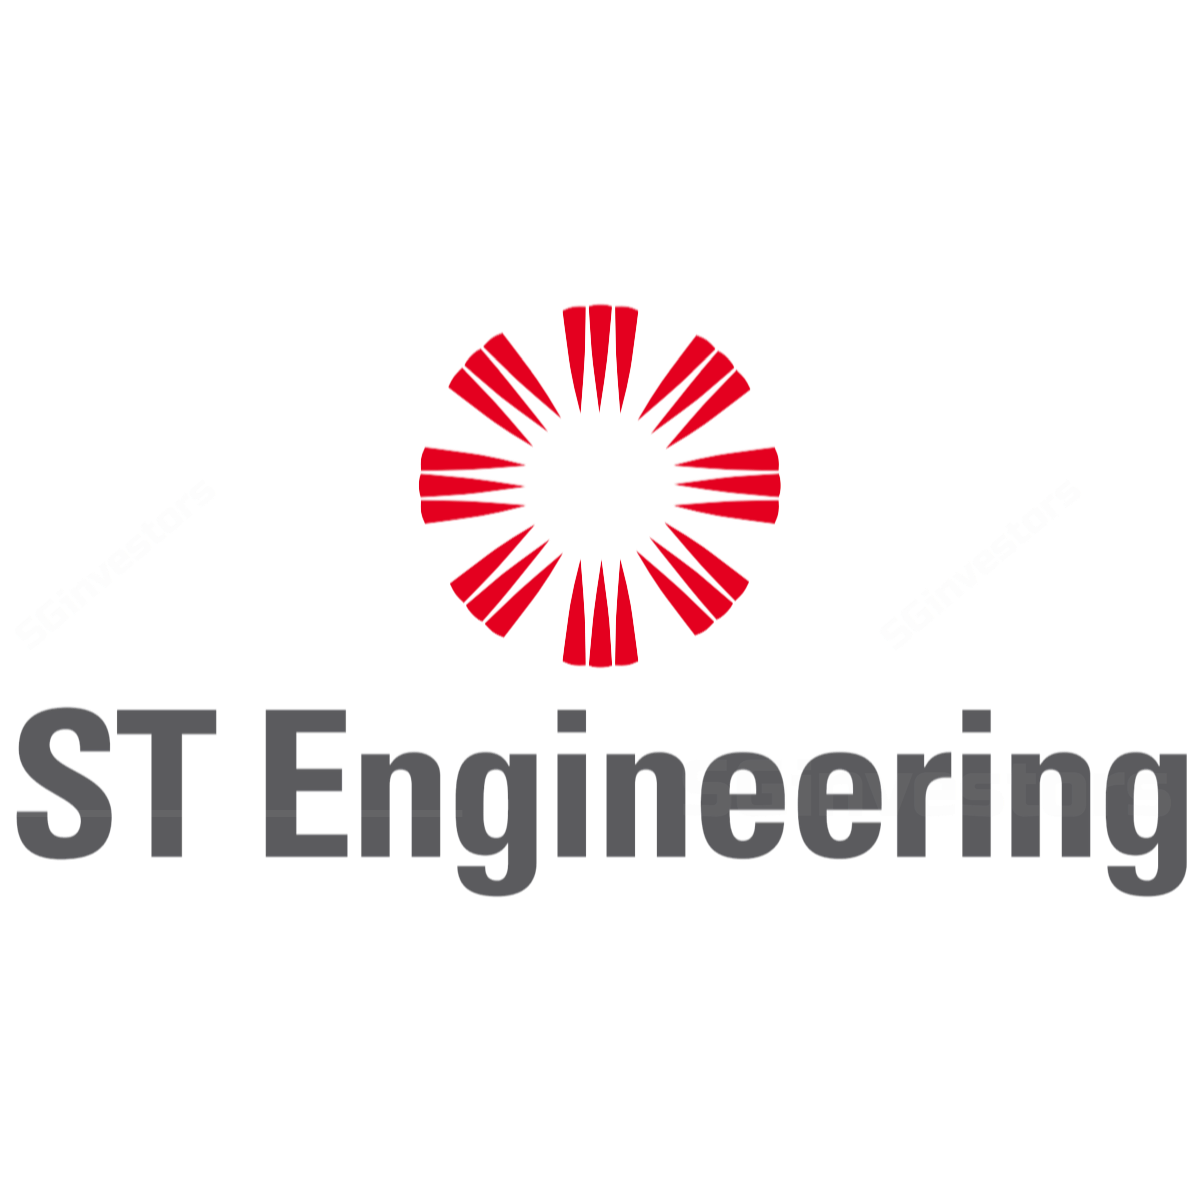 ST Engineering - OCBC Investment 2017-11-09: Weak Marine Sector Weighs On Near-term Outlook